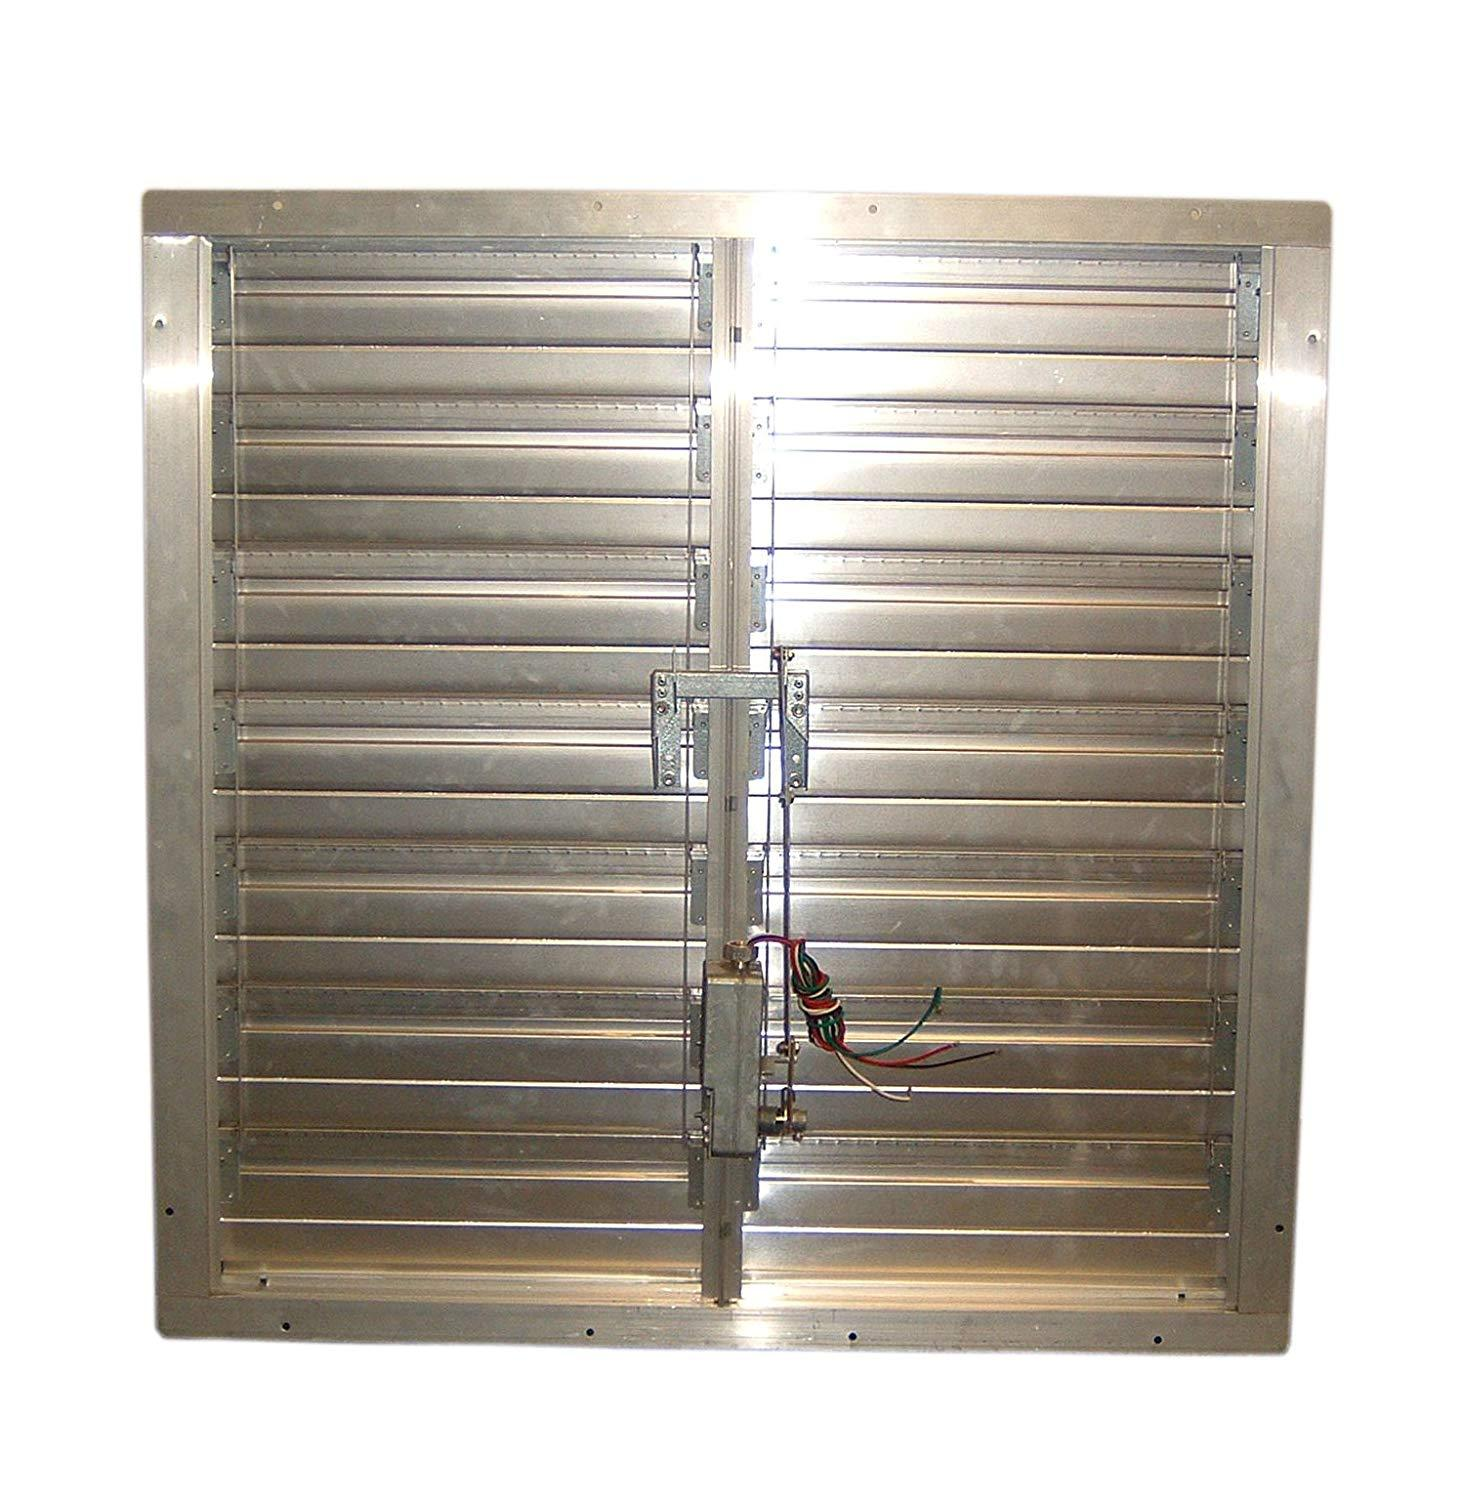 "TPI 30"" Motorized Supply Air Intake Shutter - CESM30"